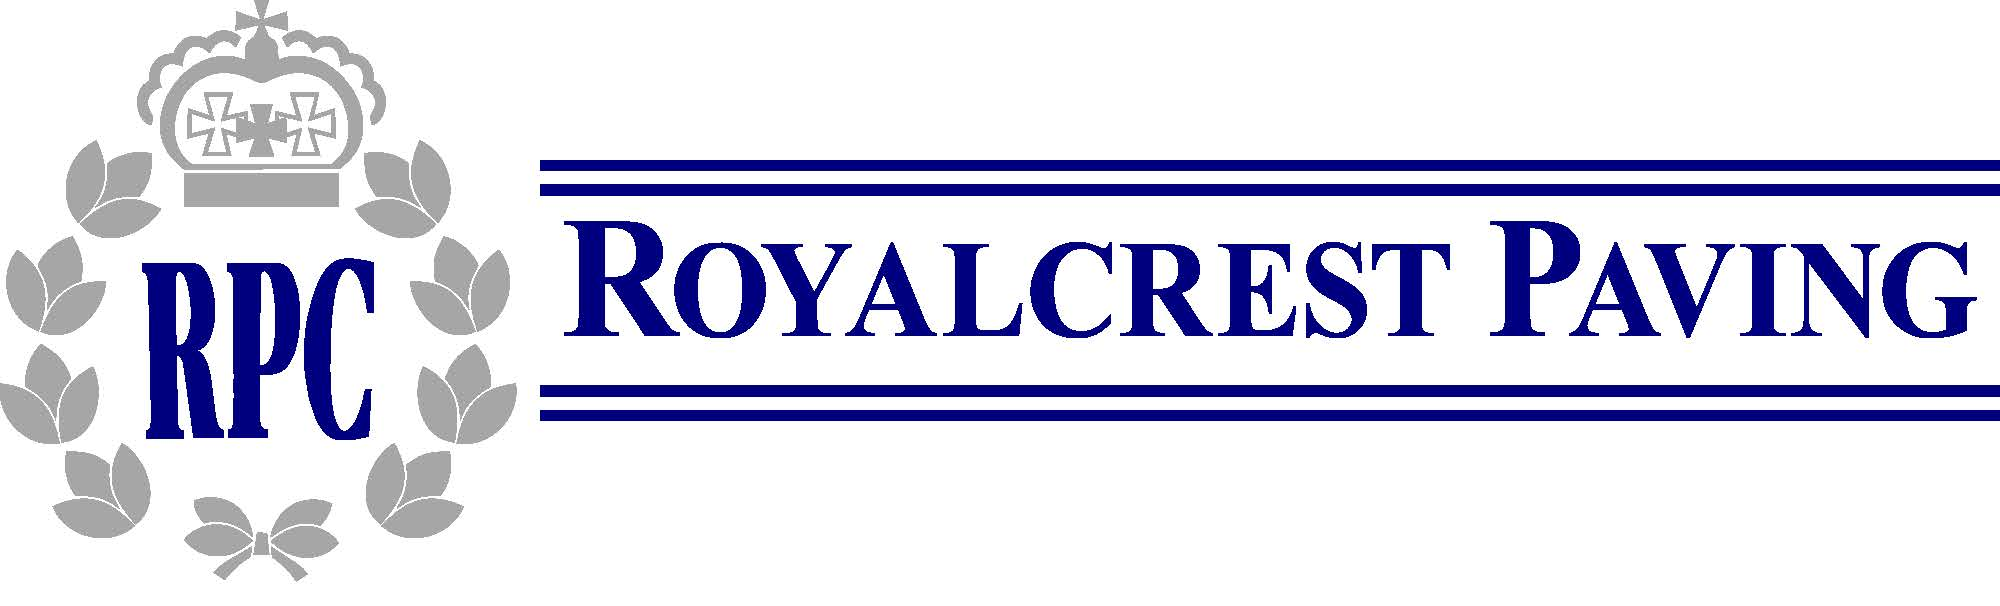 Royal Crest logo.jpg